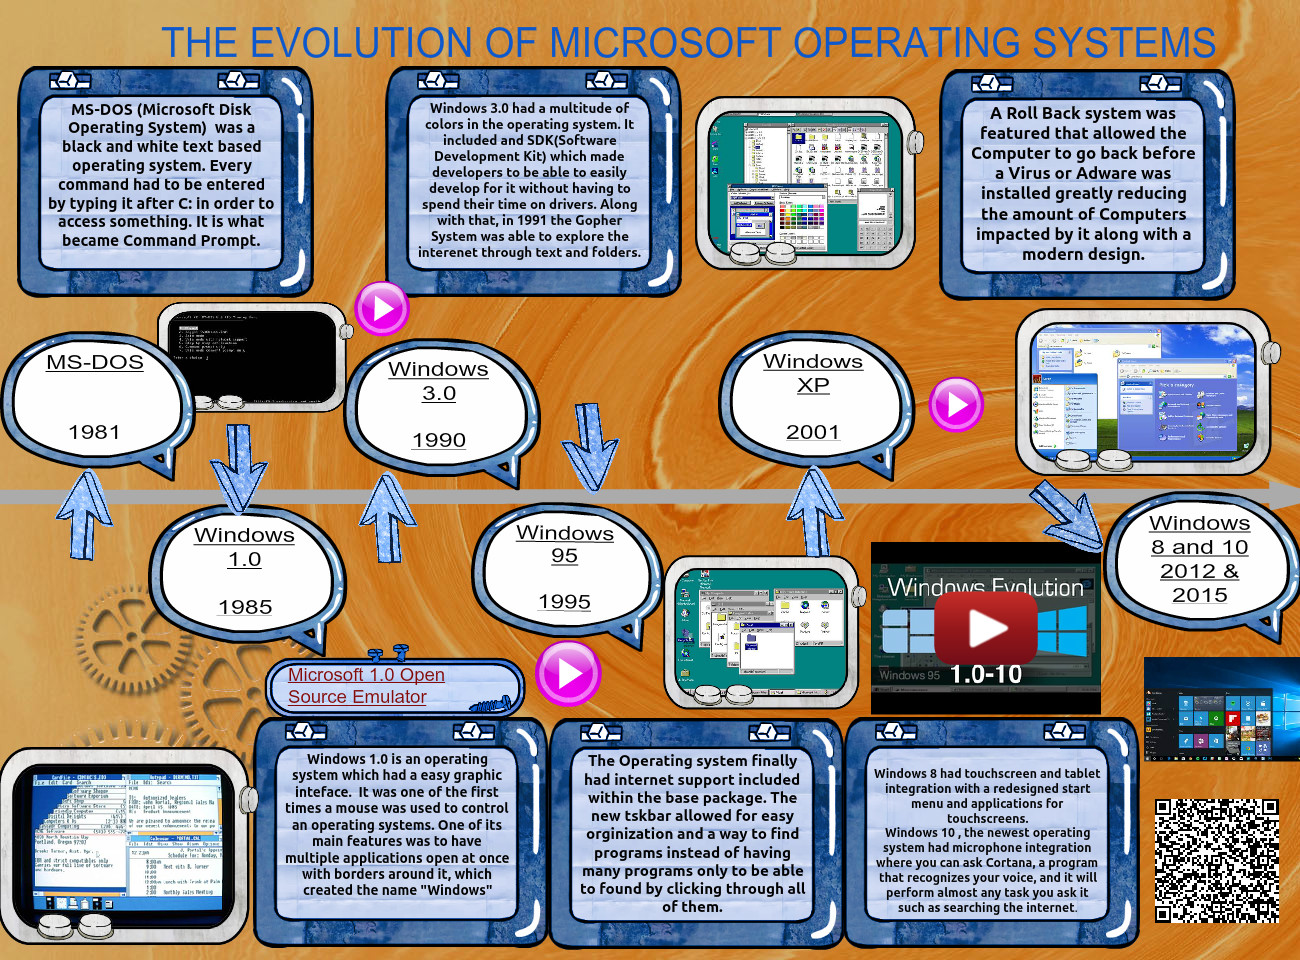 The History of Microsoft Operating Systems